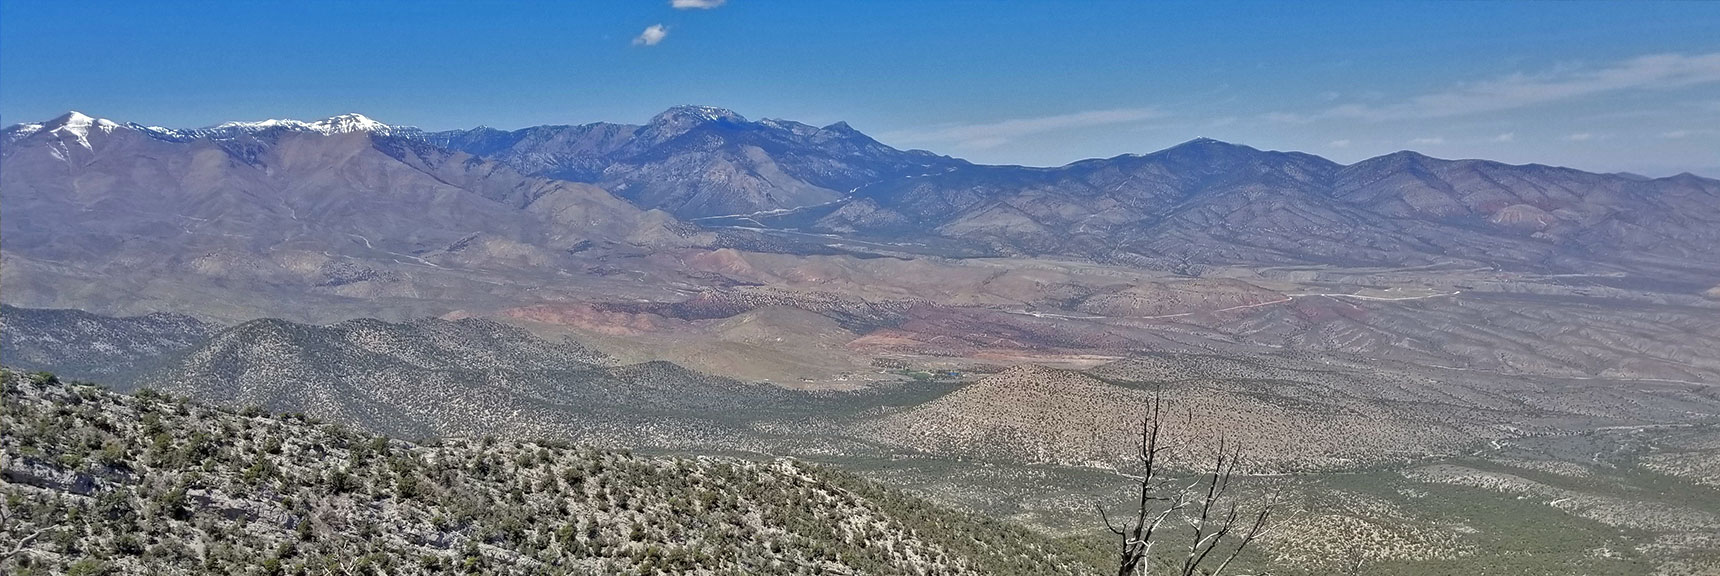 Mt. Charleston Wilderness & Kyle Canyon Viewed from Just West of El Padre Mountain, La Madre Mountains Wilderness, Nevada